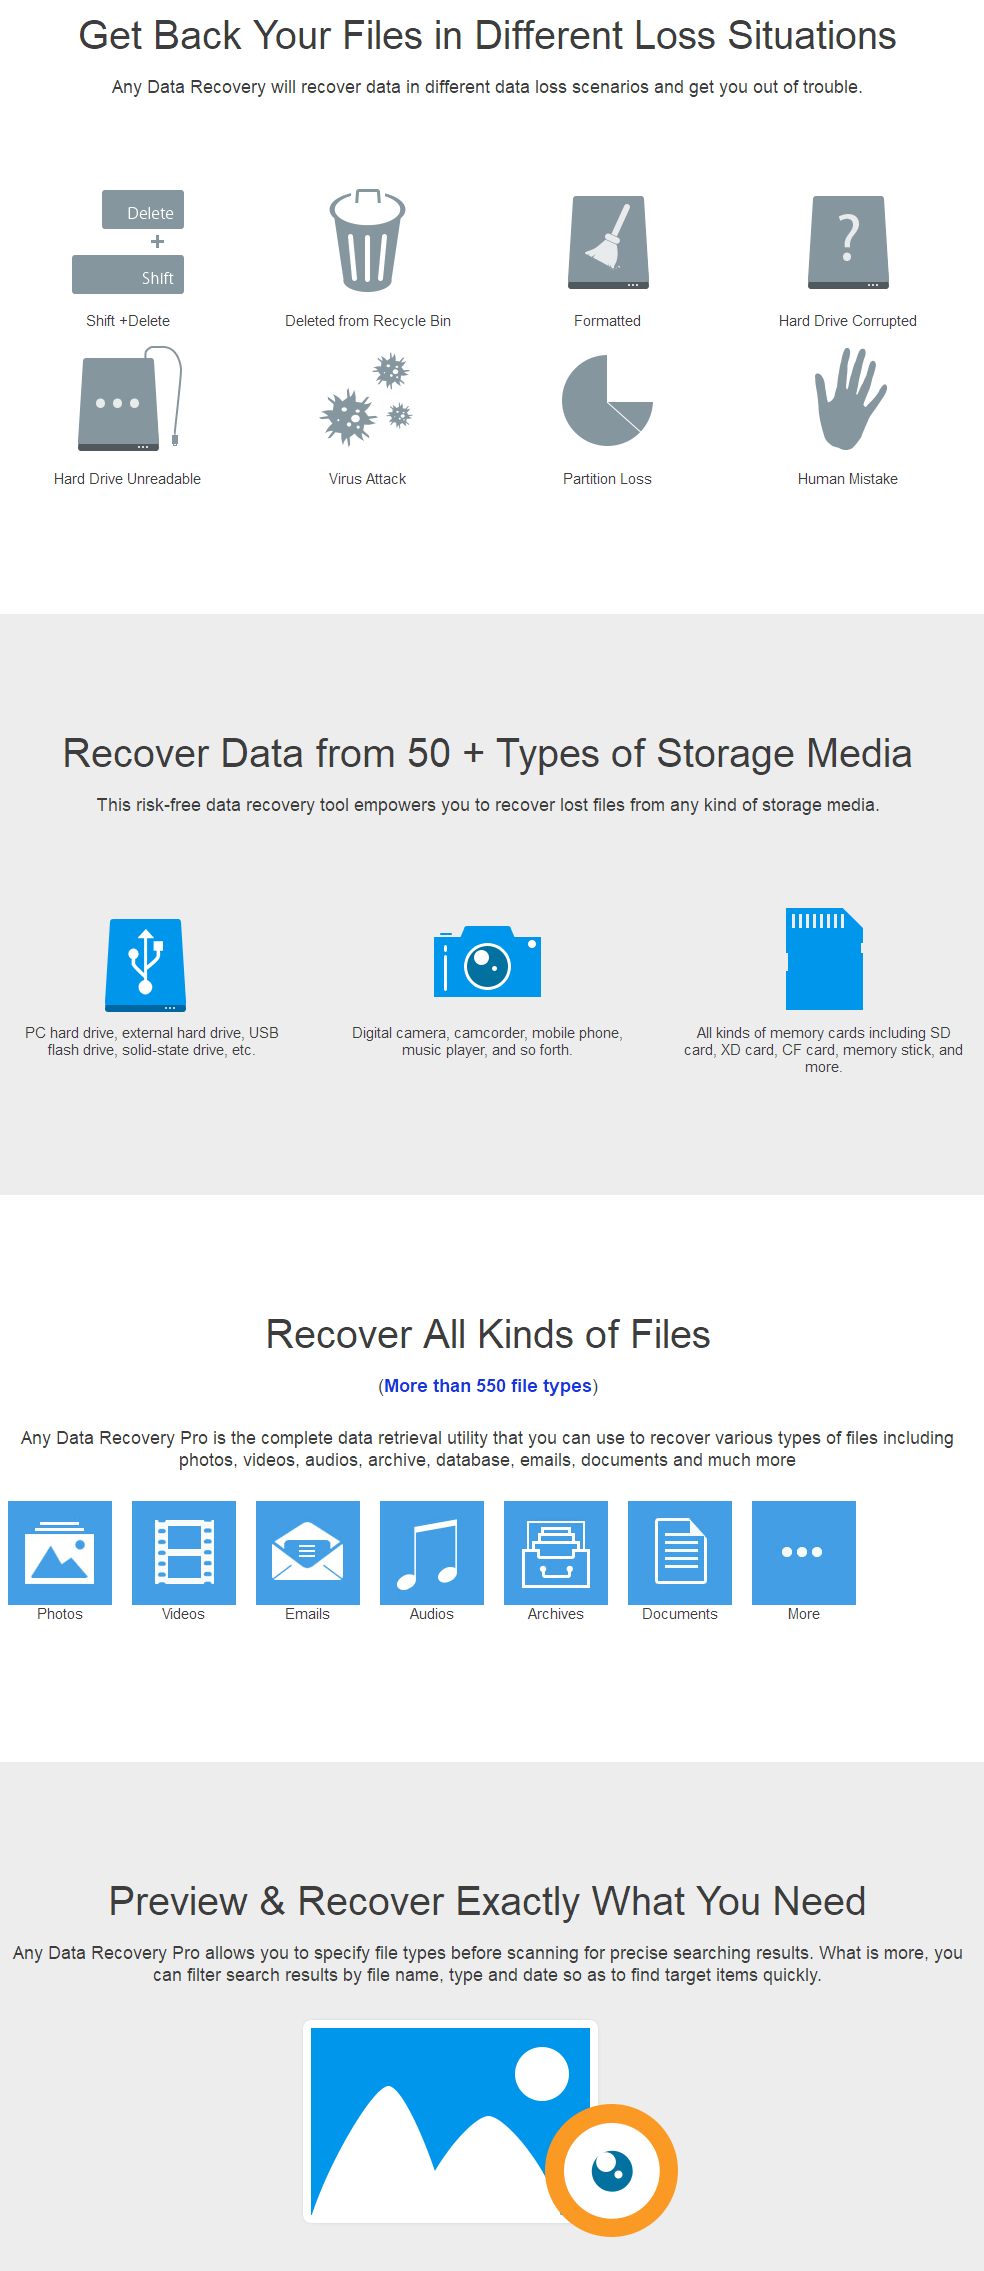 Tenorshare Any Data Recovery Pro Feature